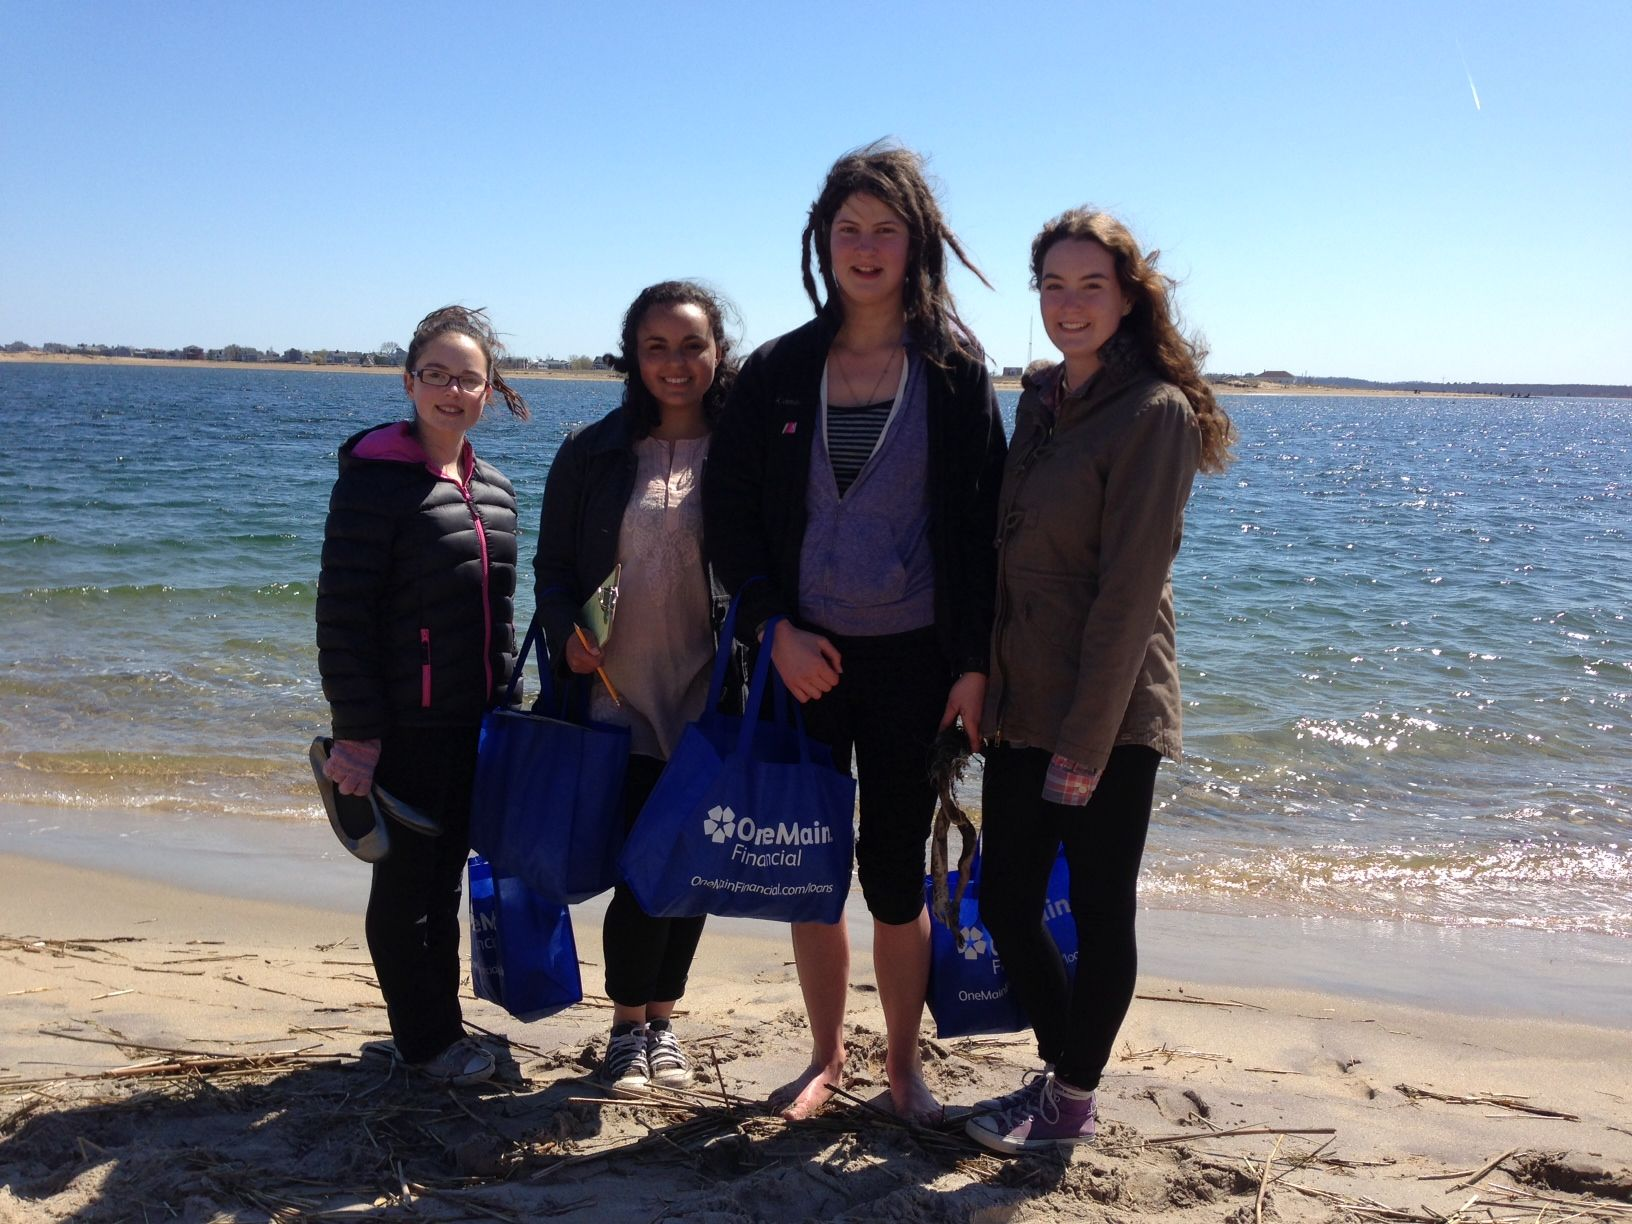 Camilla Sheen, Sadhana Lake '18, Cordelia Schiller '16, and Laini Kellar '16 after a day of beach combing!